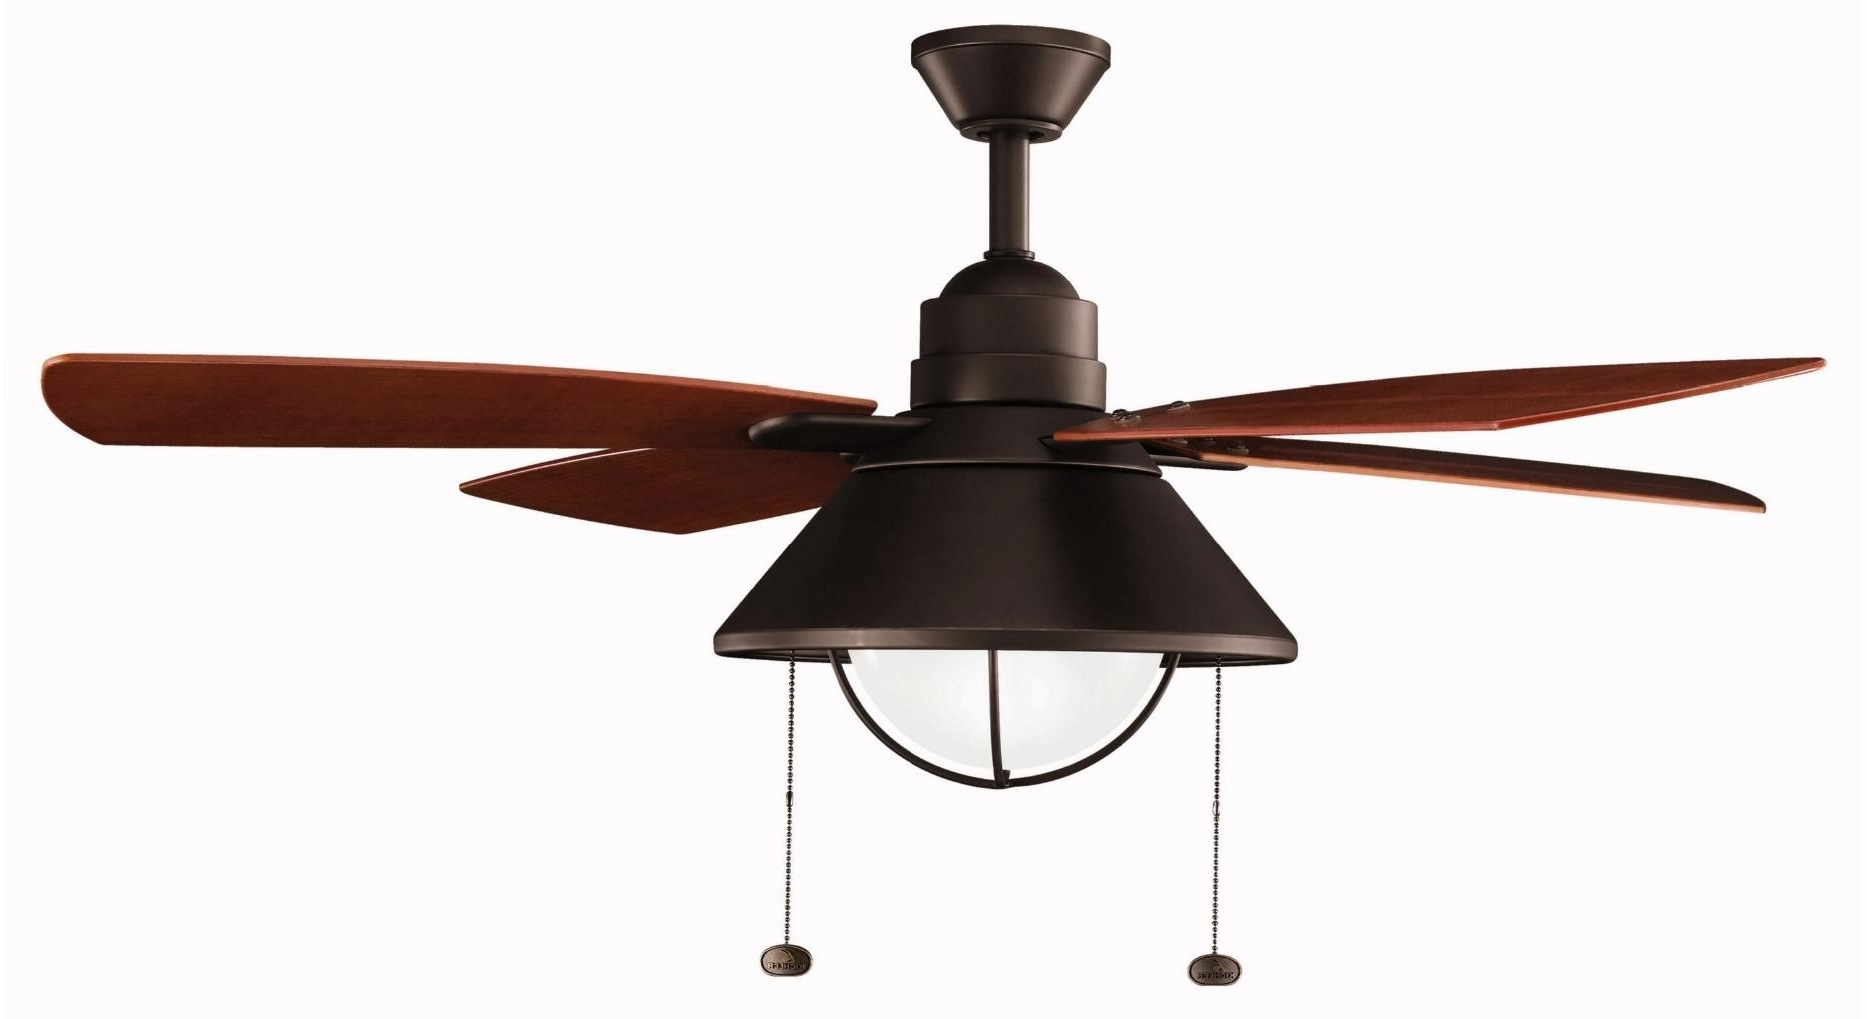 Unique Outdoor Ceiling Fans With Lights Within Most Recently Released Ceiling Fans Door Outdoor Ceiling Fans With Light Trend In Tray (Gallery 14 of 20)